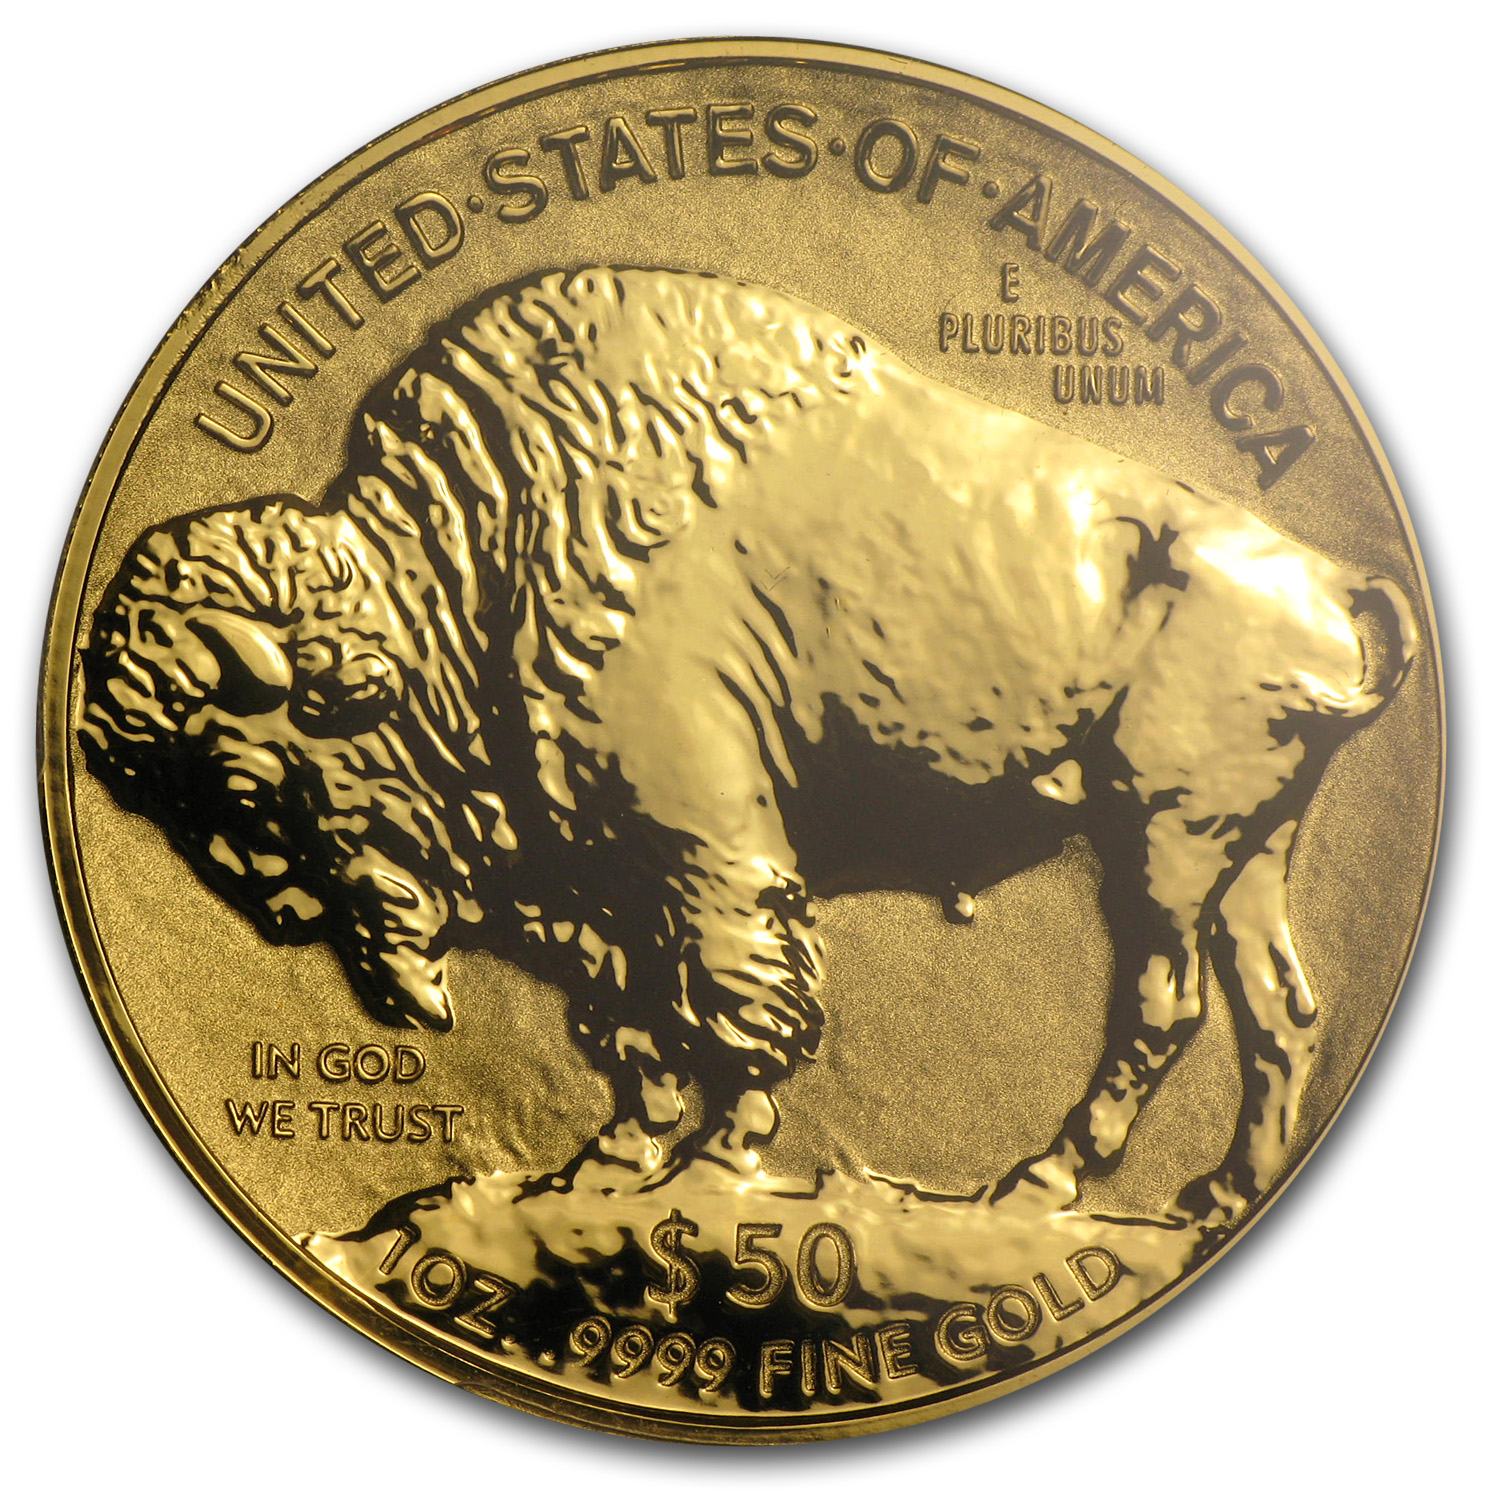 2013 1 oz Rev Proof Gold Buffalo PR-70 PCGS (FS) Gold Foil